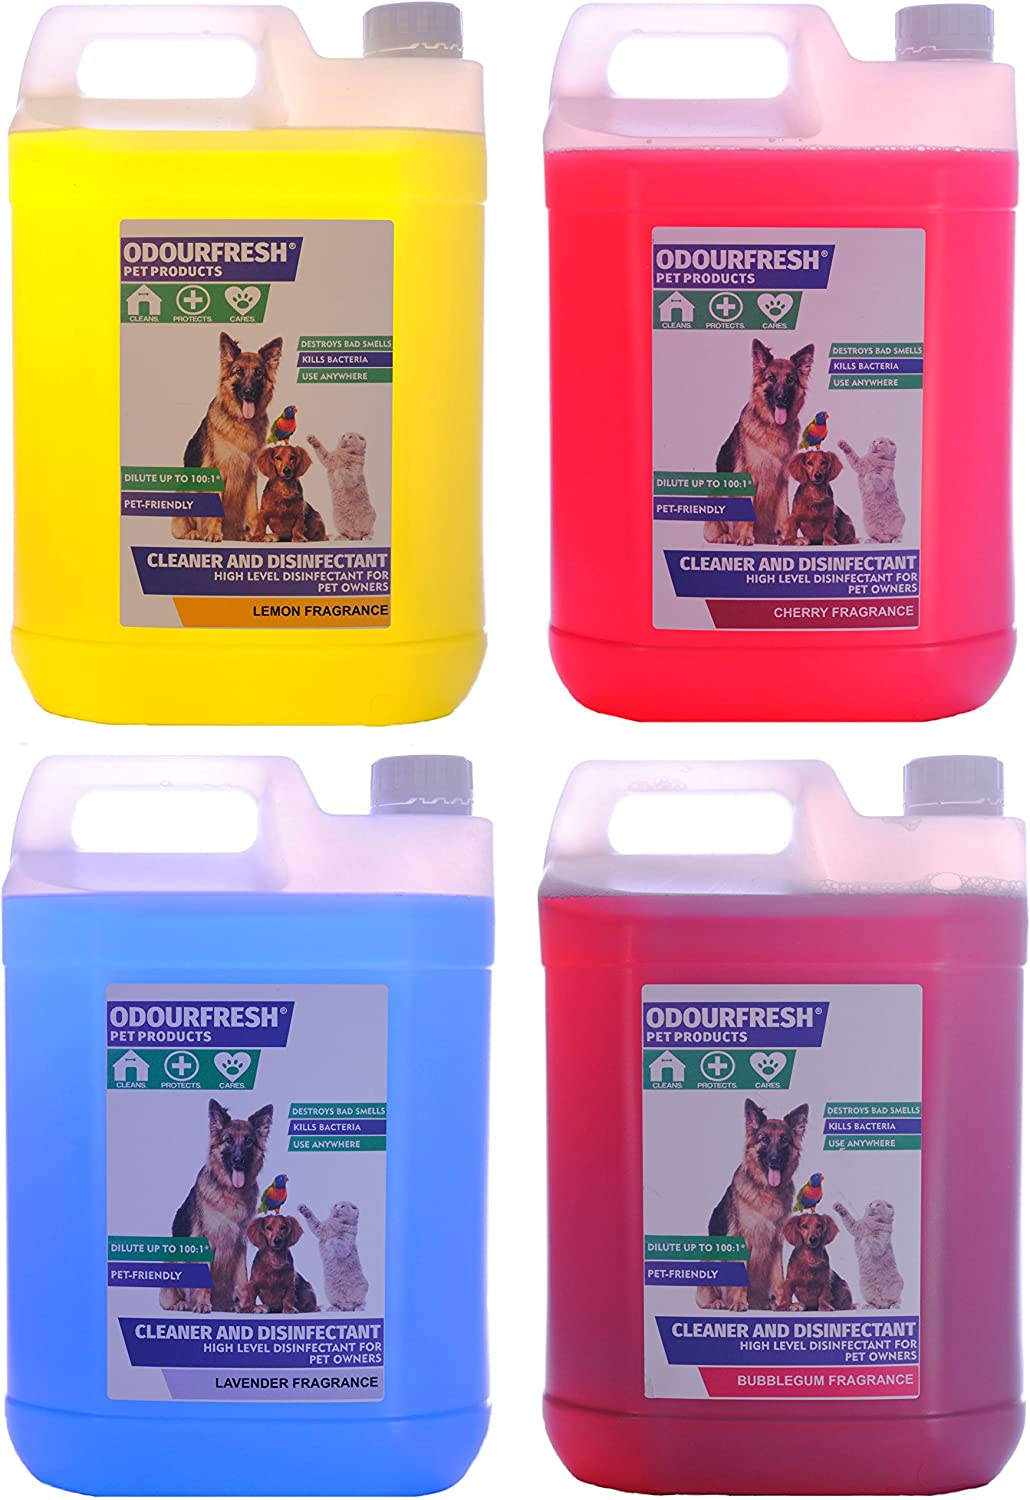 Odourfresh 4x5l Pet Disinfectant Kennel Deodoriser Choose Your Own Fragrances 12 Available Suitable For Dogs Cats Horses Rodents And More Amazon Co Uk Pet Supplies